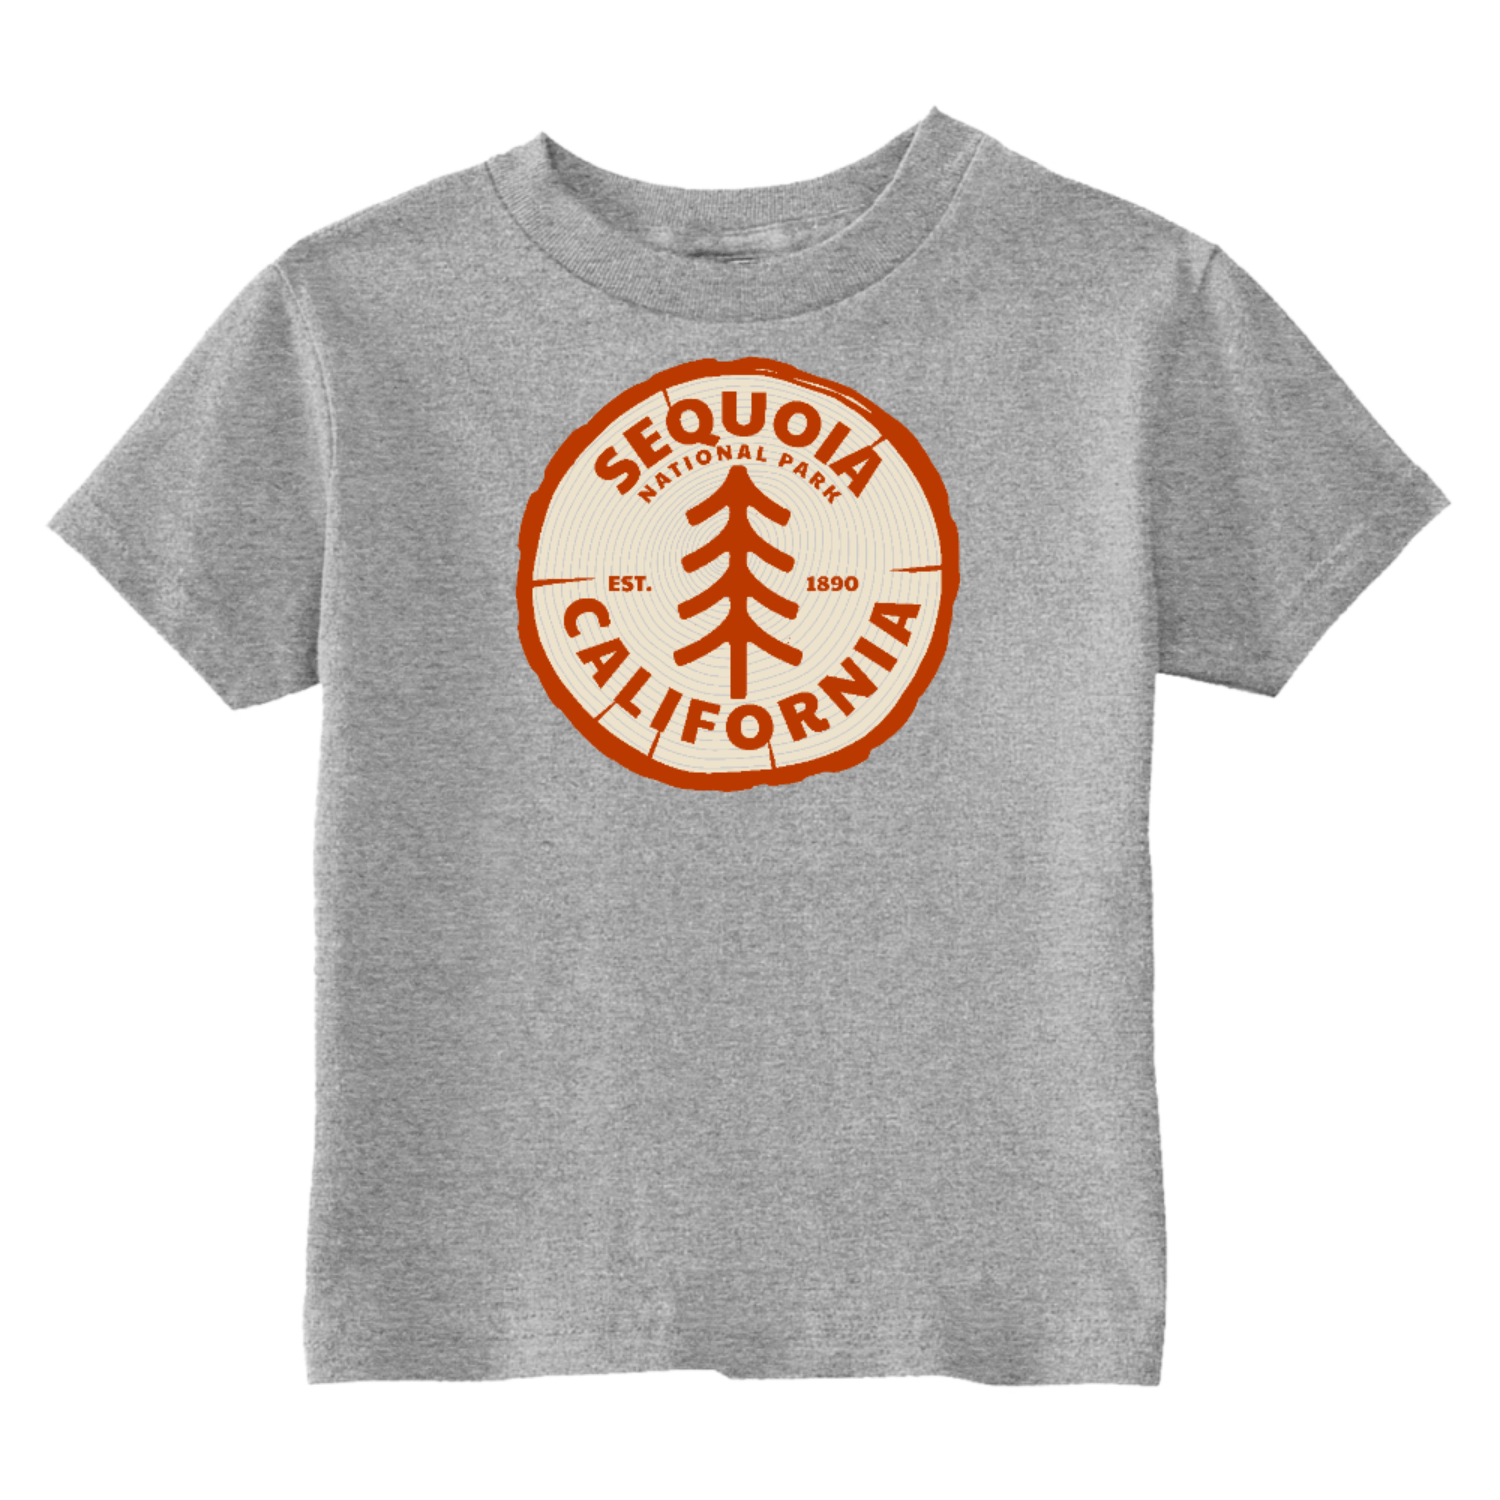 Sequoia National Park Toddler T-Shirt Gray